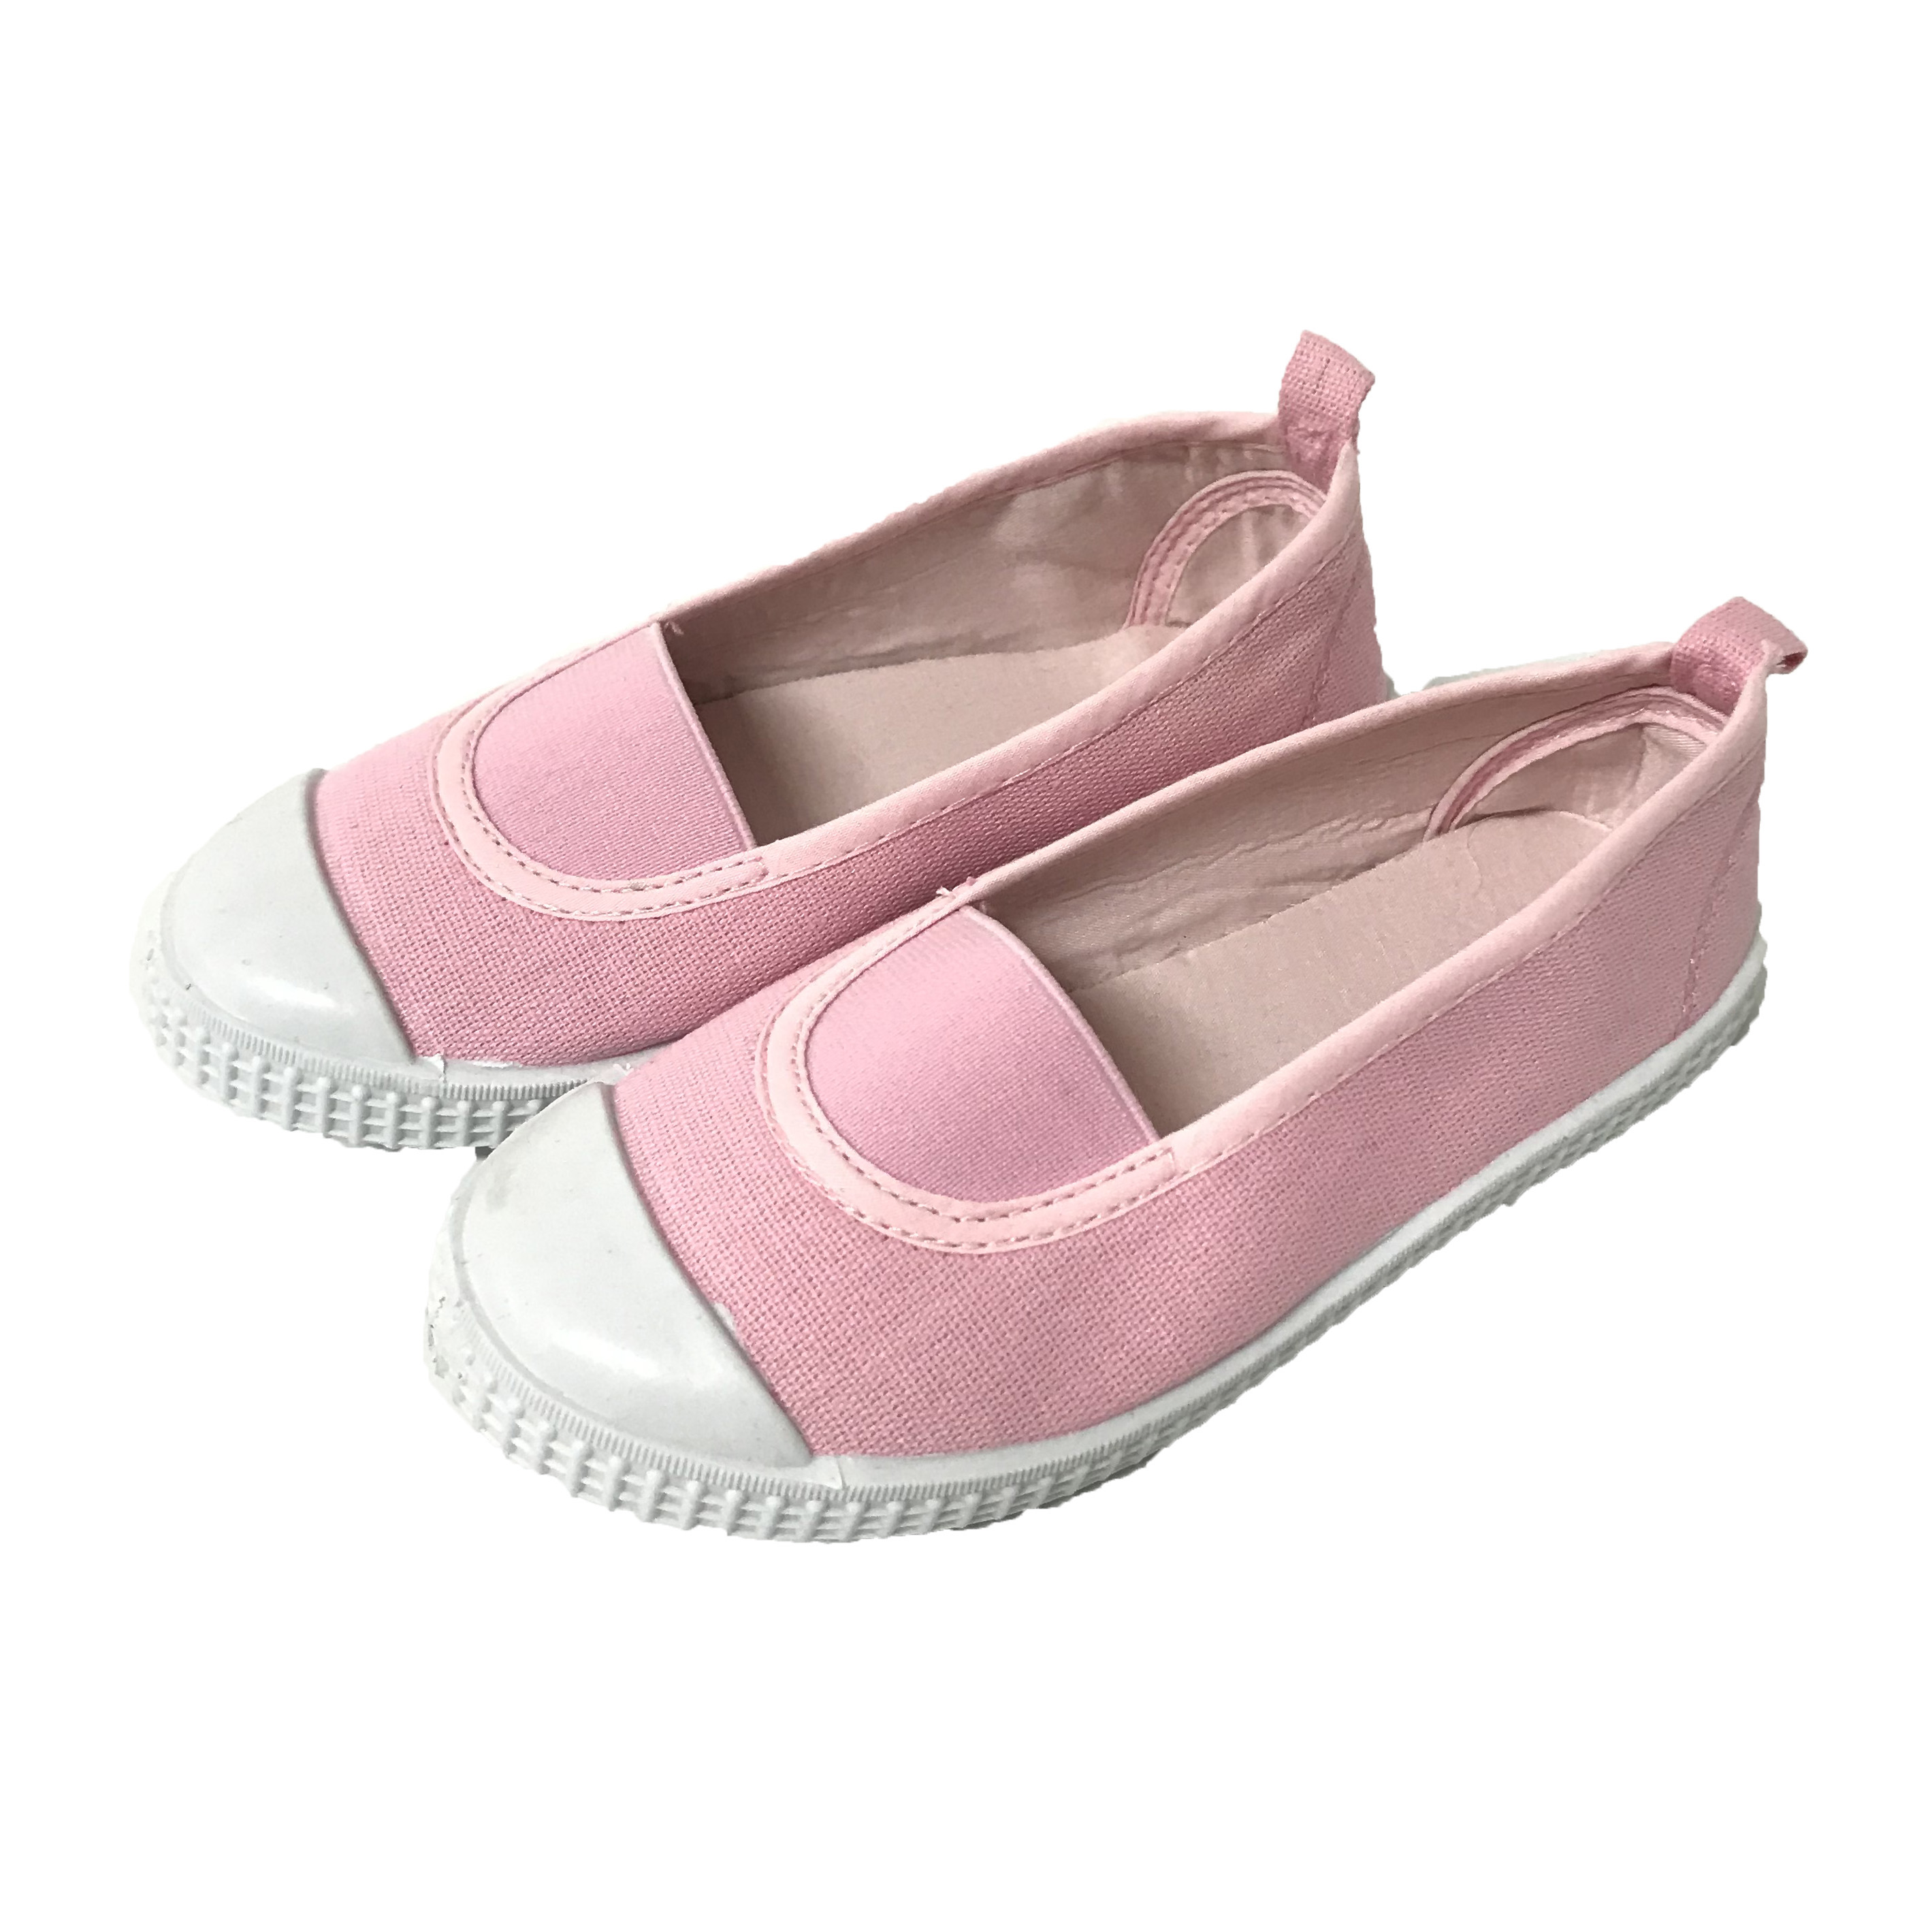 pink elastic girls canvas flat white outsole slip on PVC casual shoes